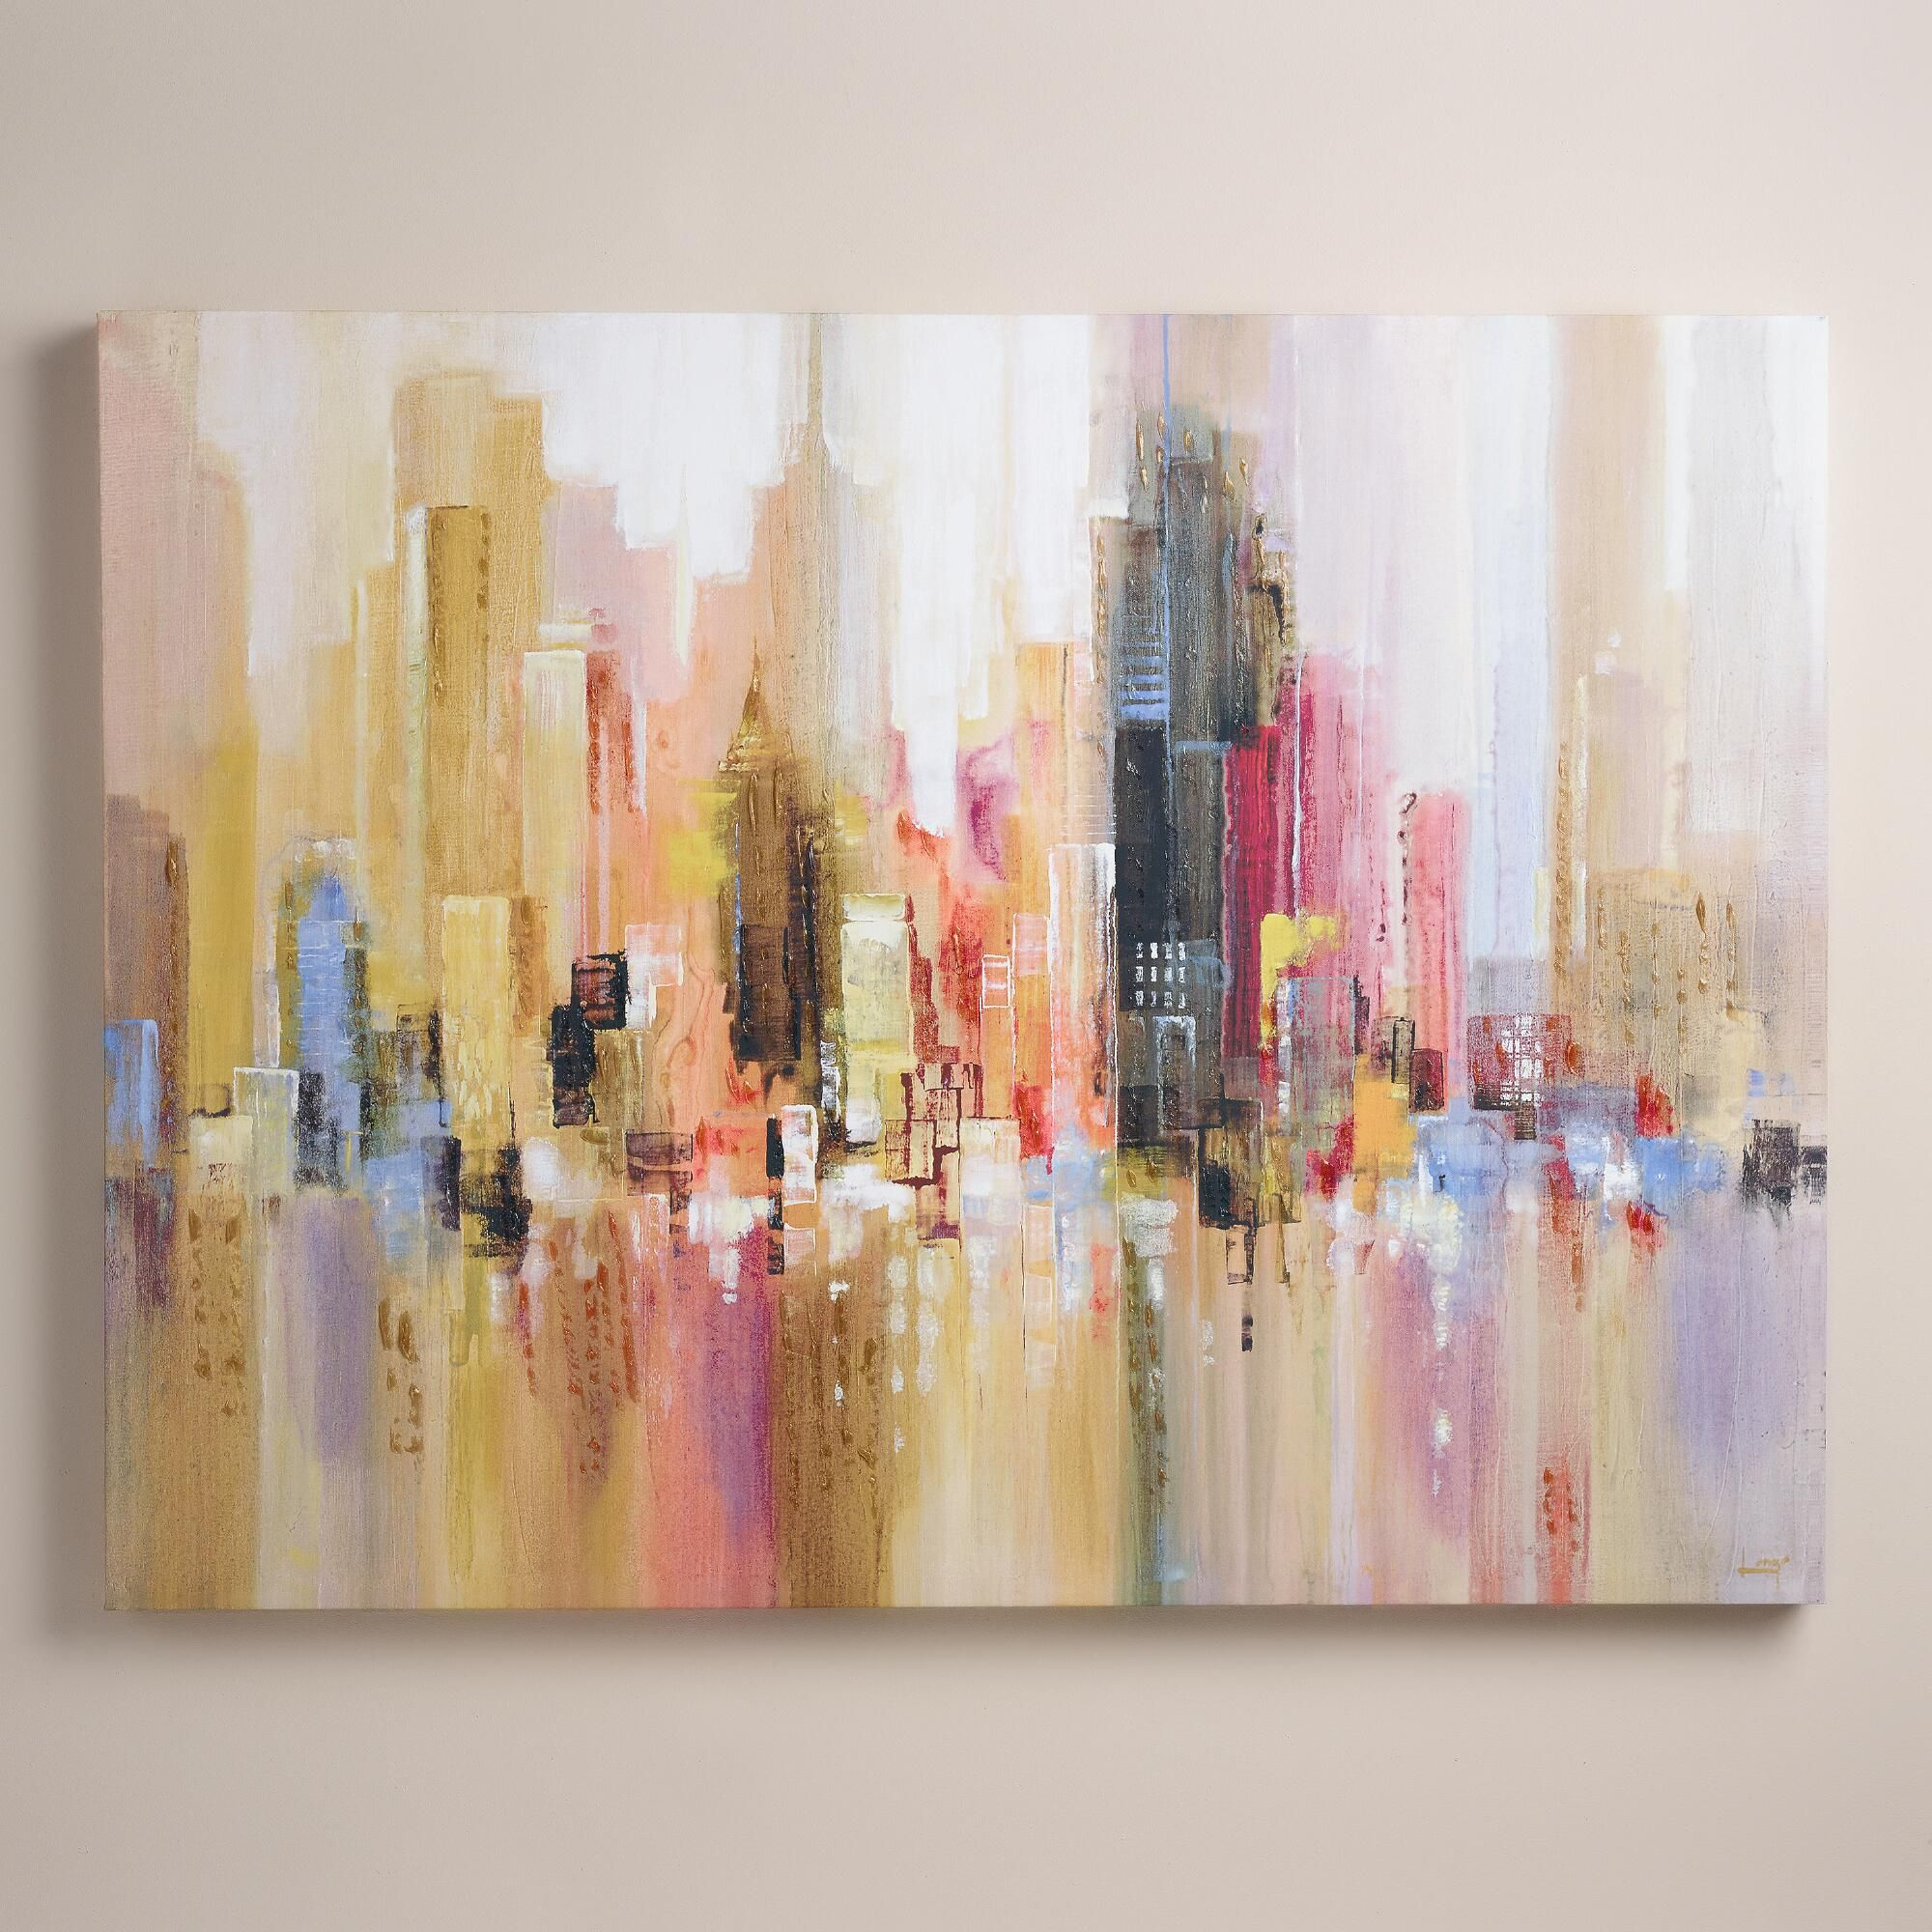 City spree bought about nine months ago gorgeous for World market wall decor